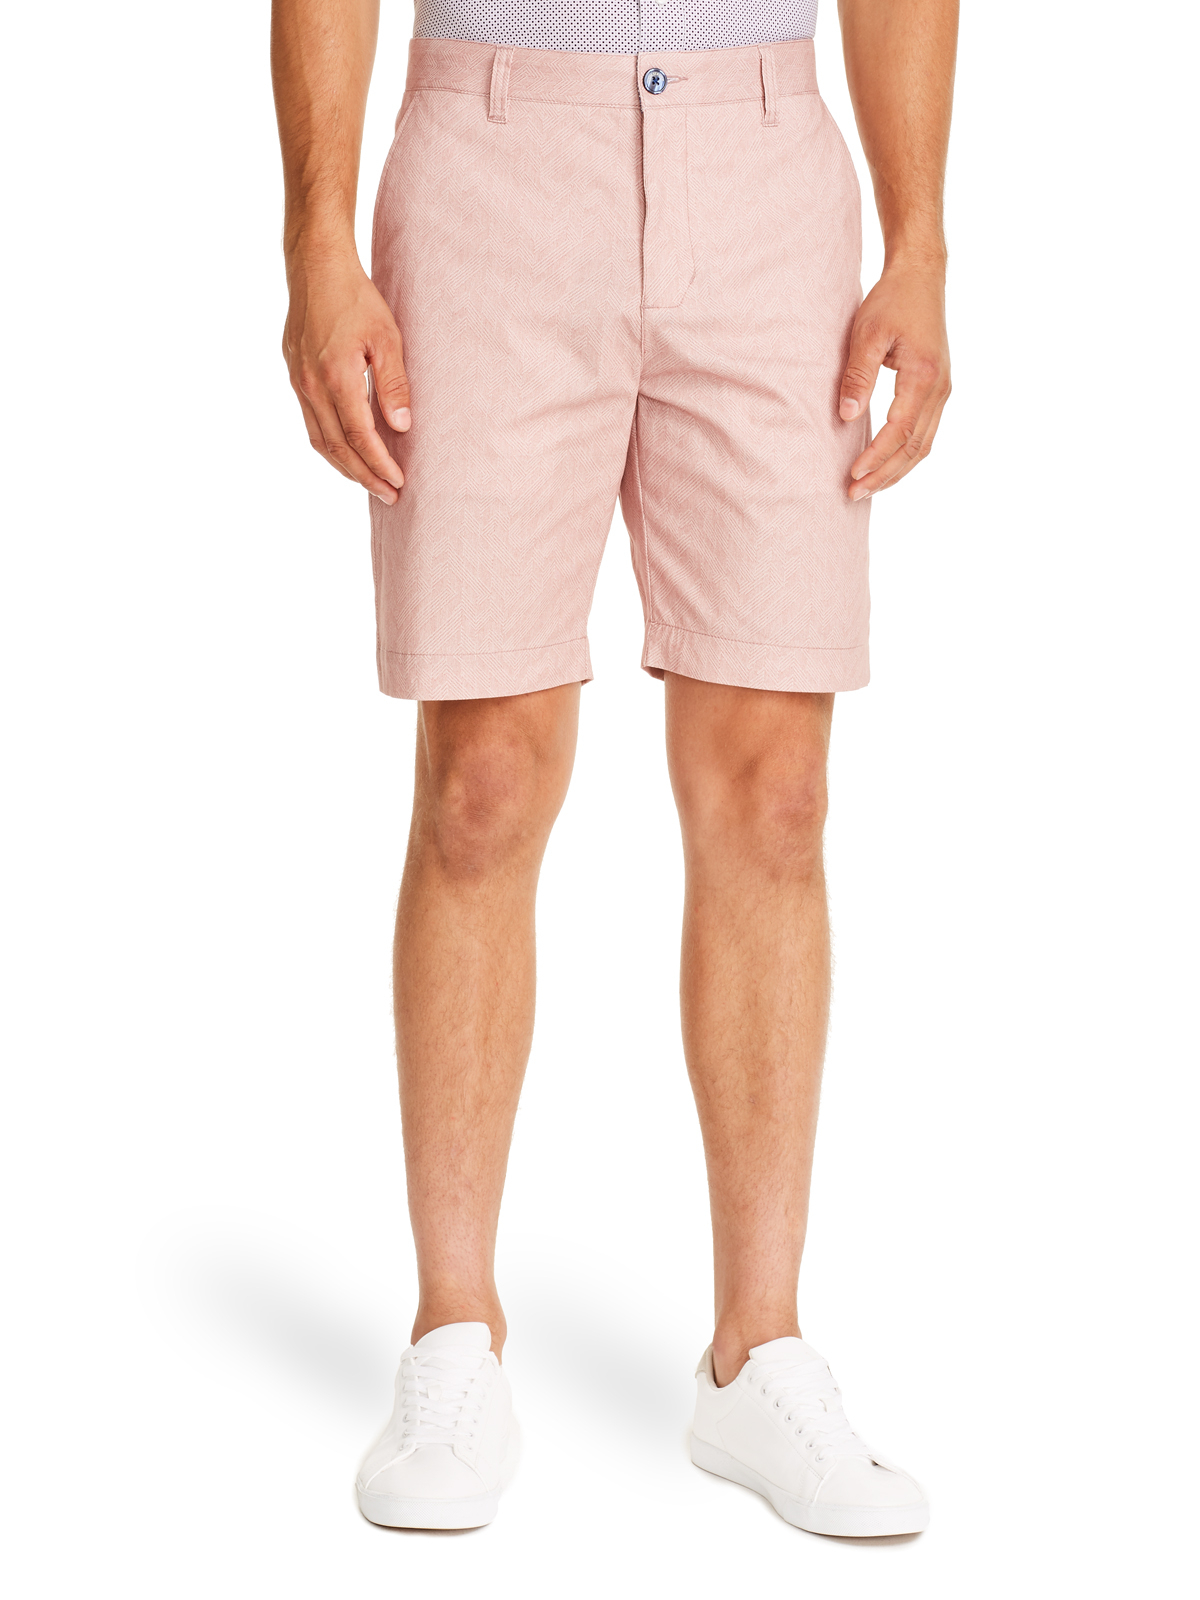 PINK TEXTURED SHORTS FOR MEN FRONT VIEW